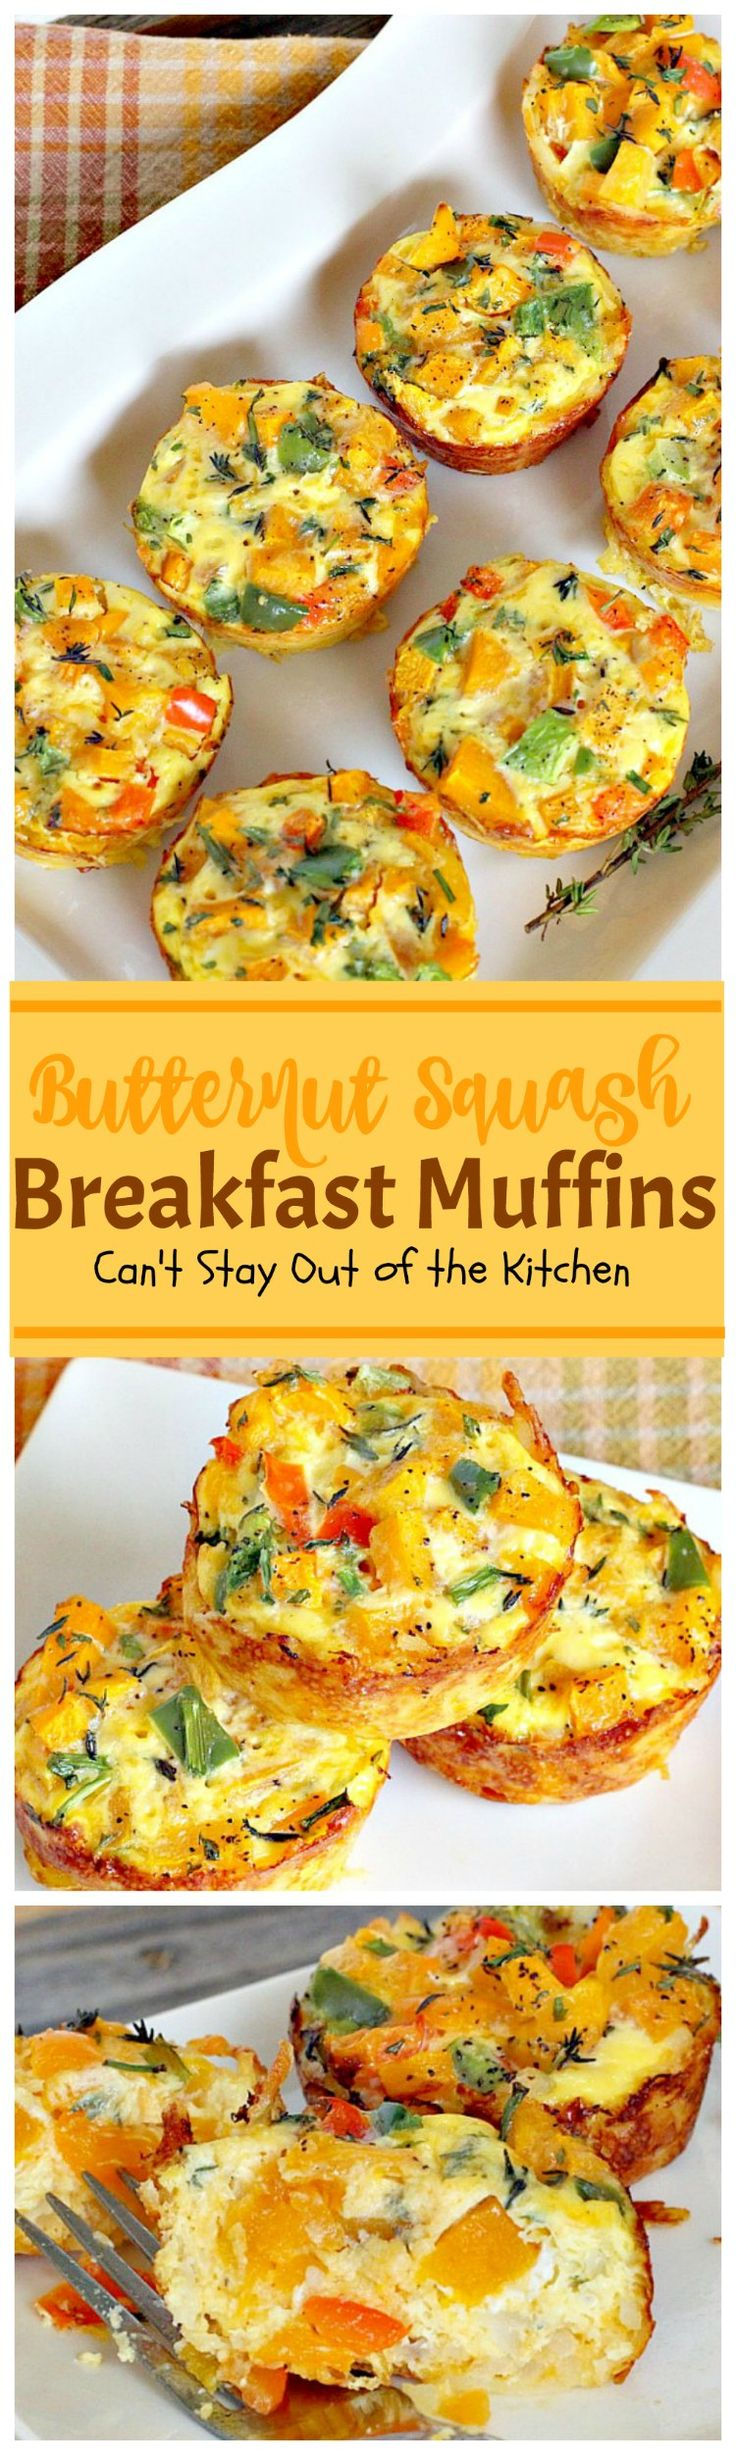 Butternut Squash Breakfast Muffins   Can't Stay Out of the Kitchen   Oh my goodness we LOVED these #breakfast #muffins. These are made with #butternutsquash and so divine! #vegetarian #glutenfree